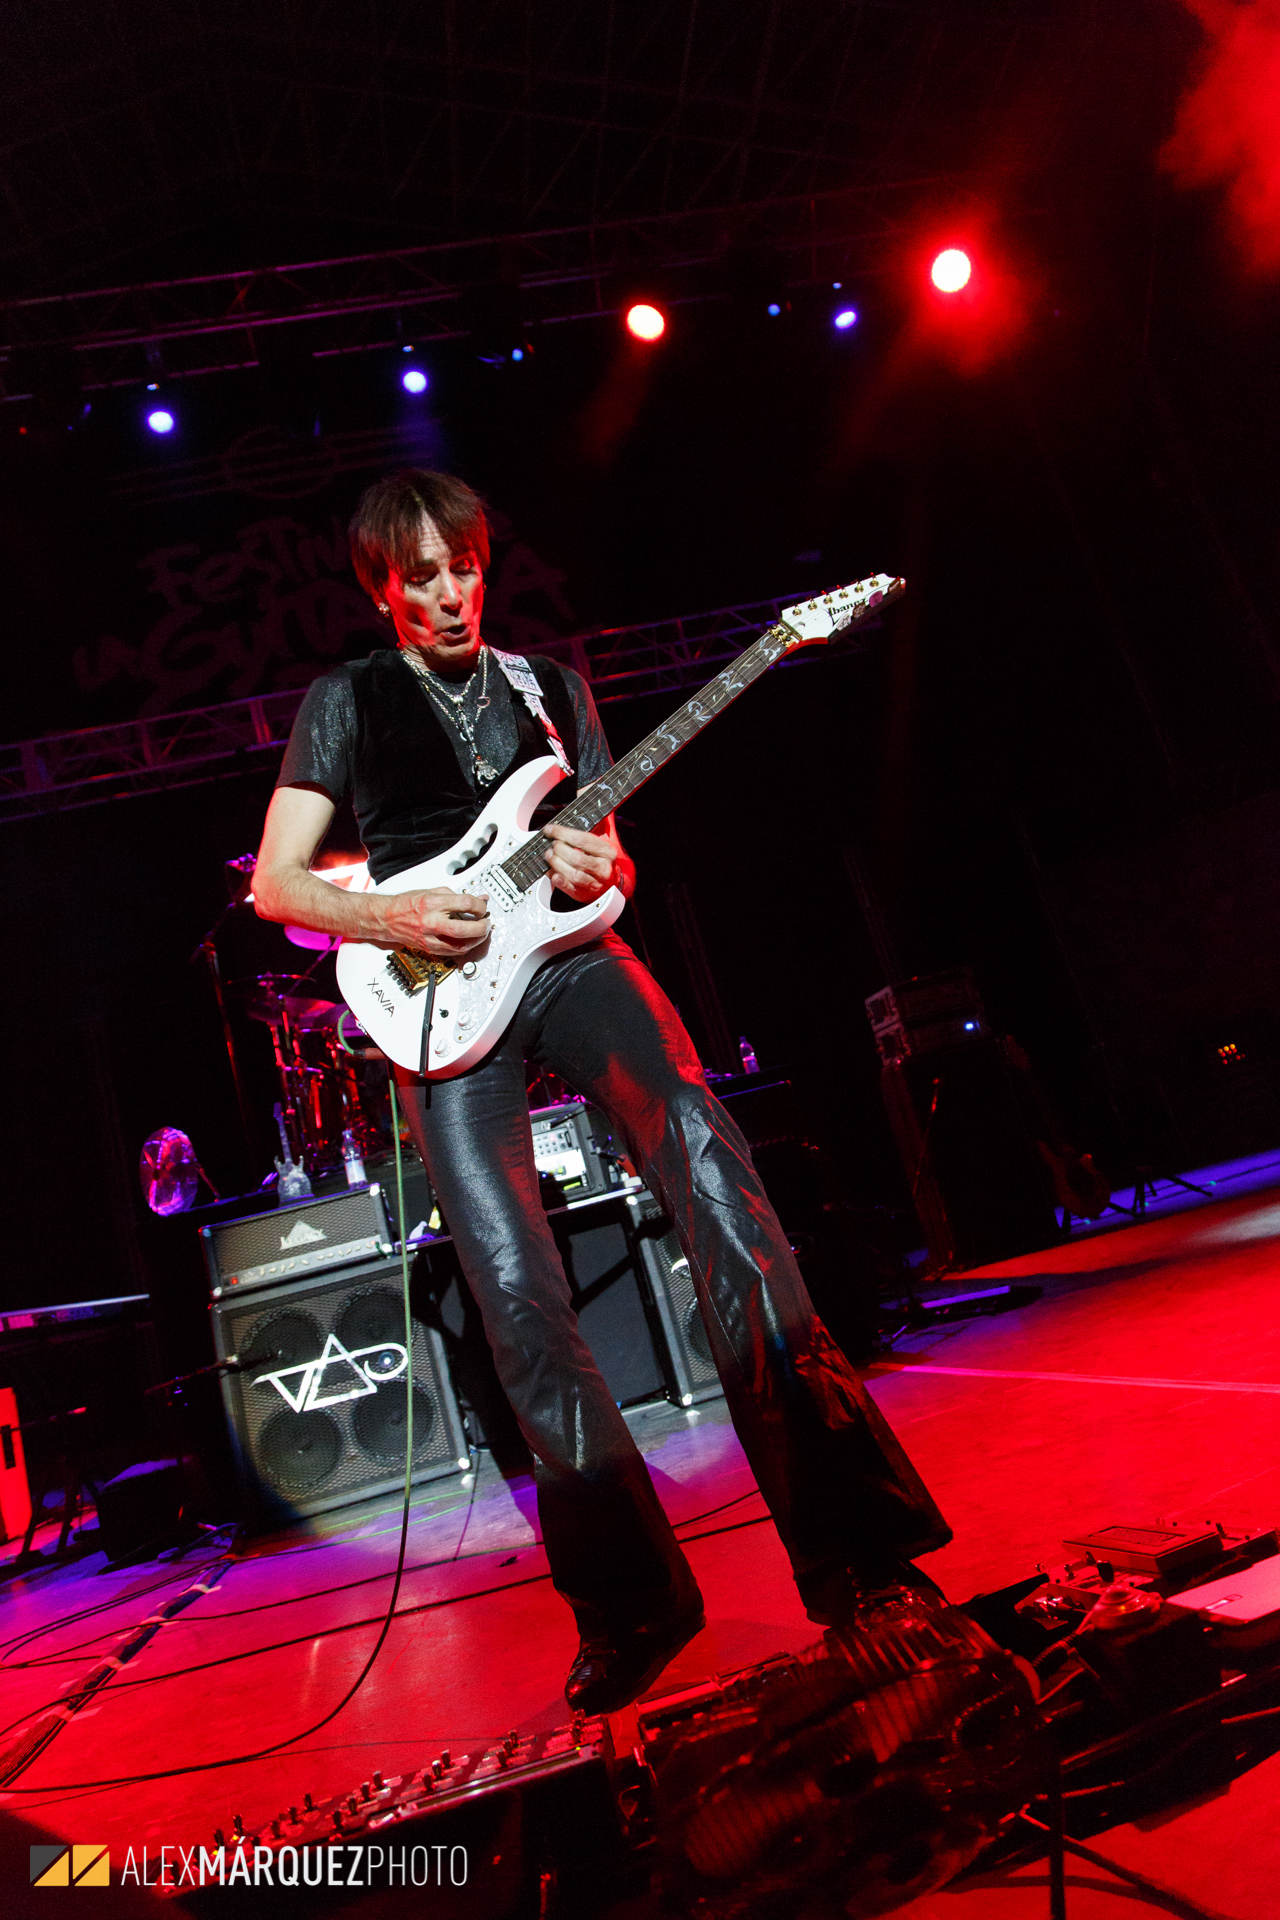 Steve Vai - Alex Marquez Photo